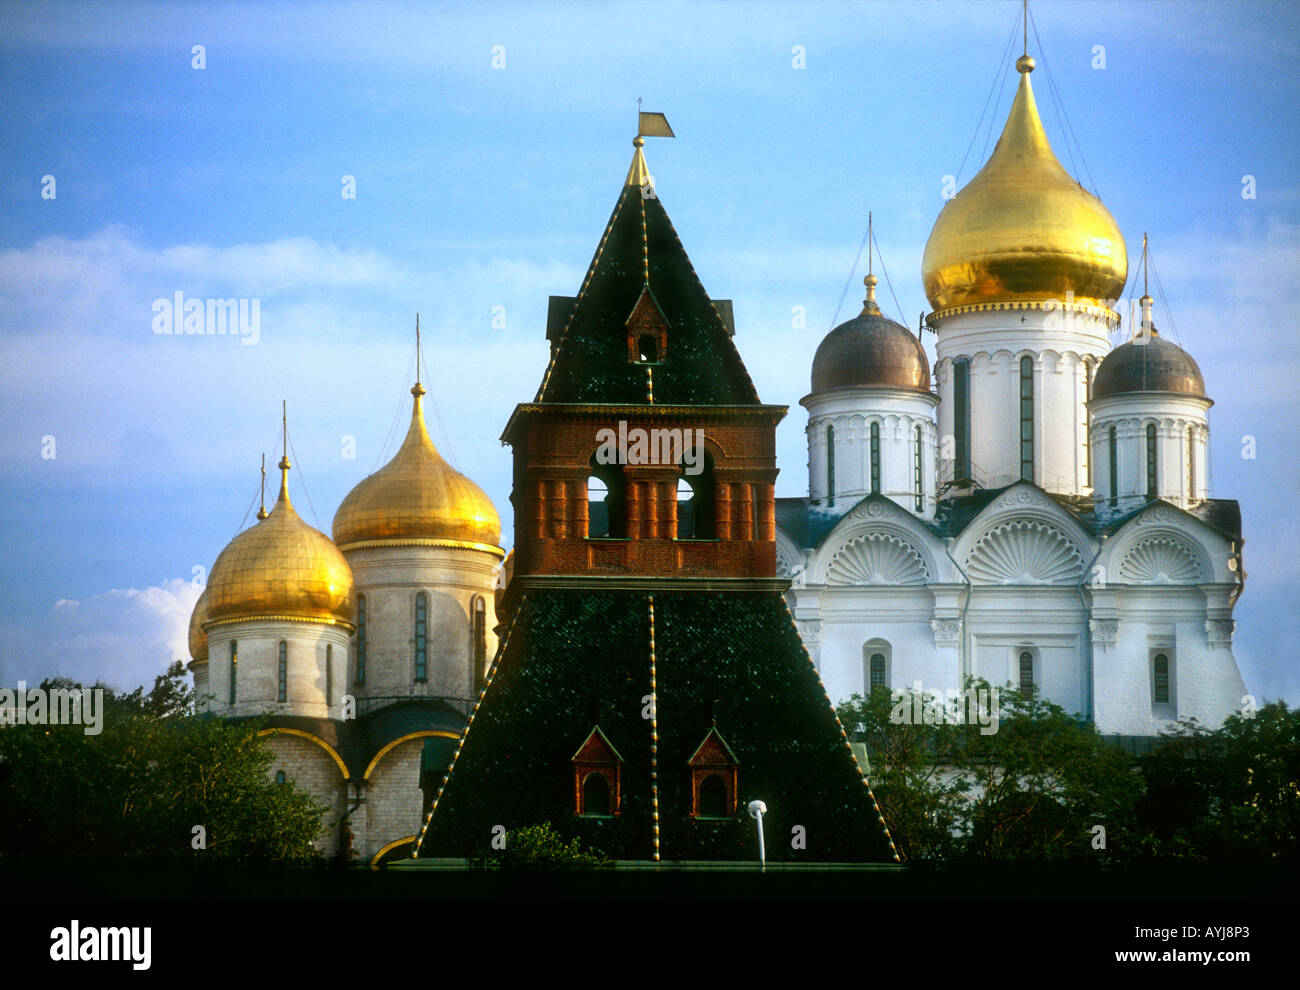 Gold coloured domed cupolas cathedral in Moscow Russia - Stock Image